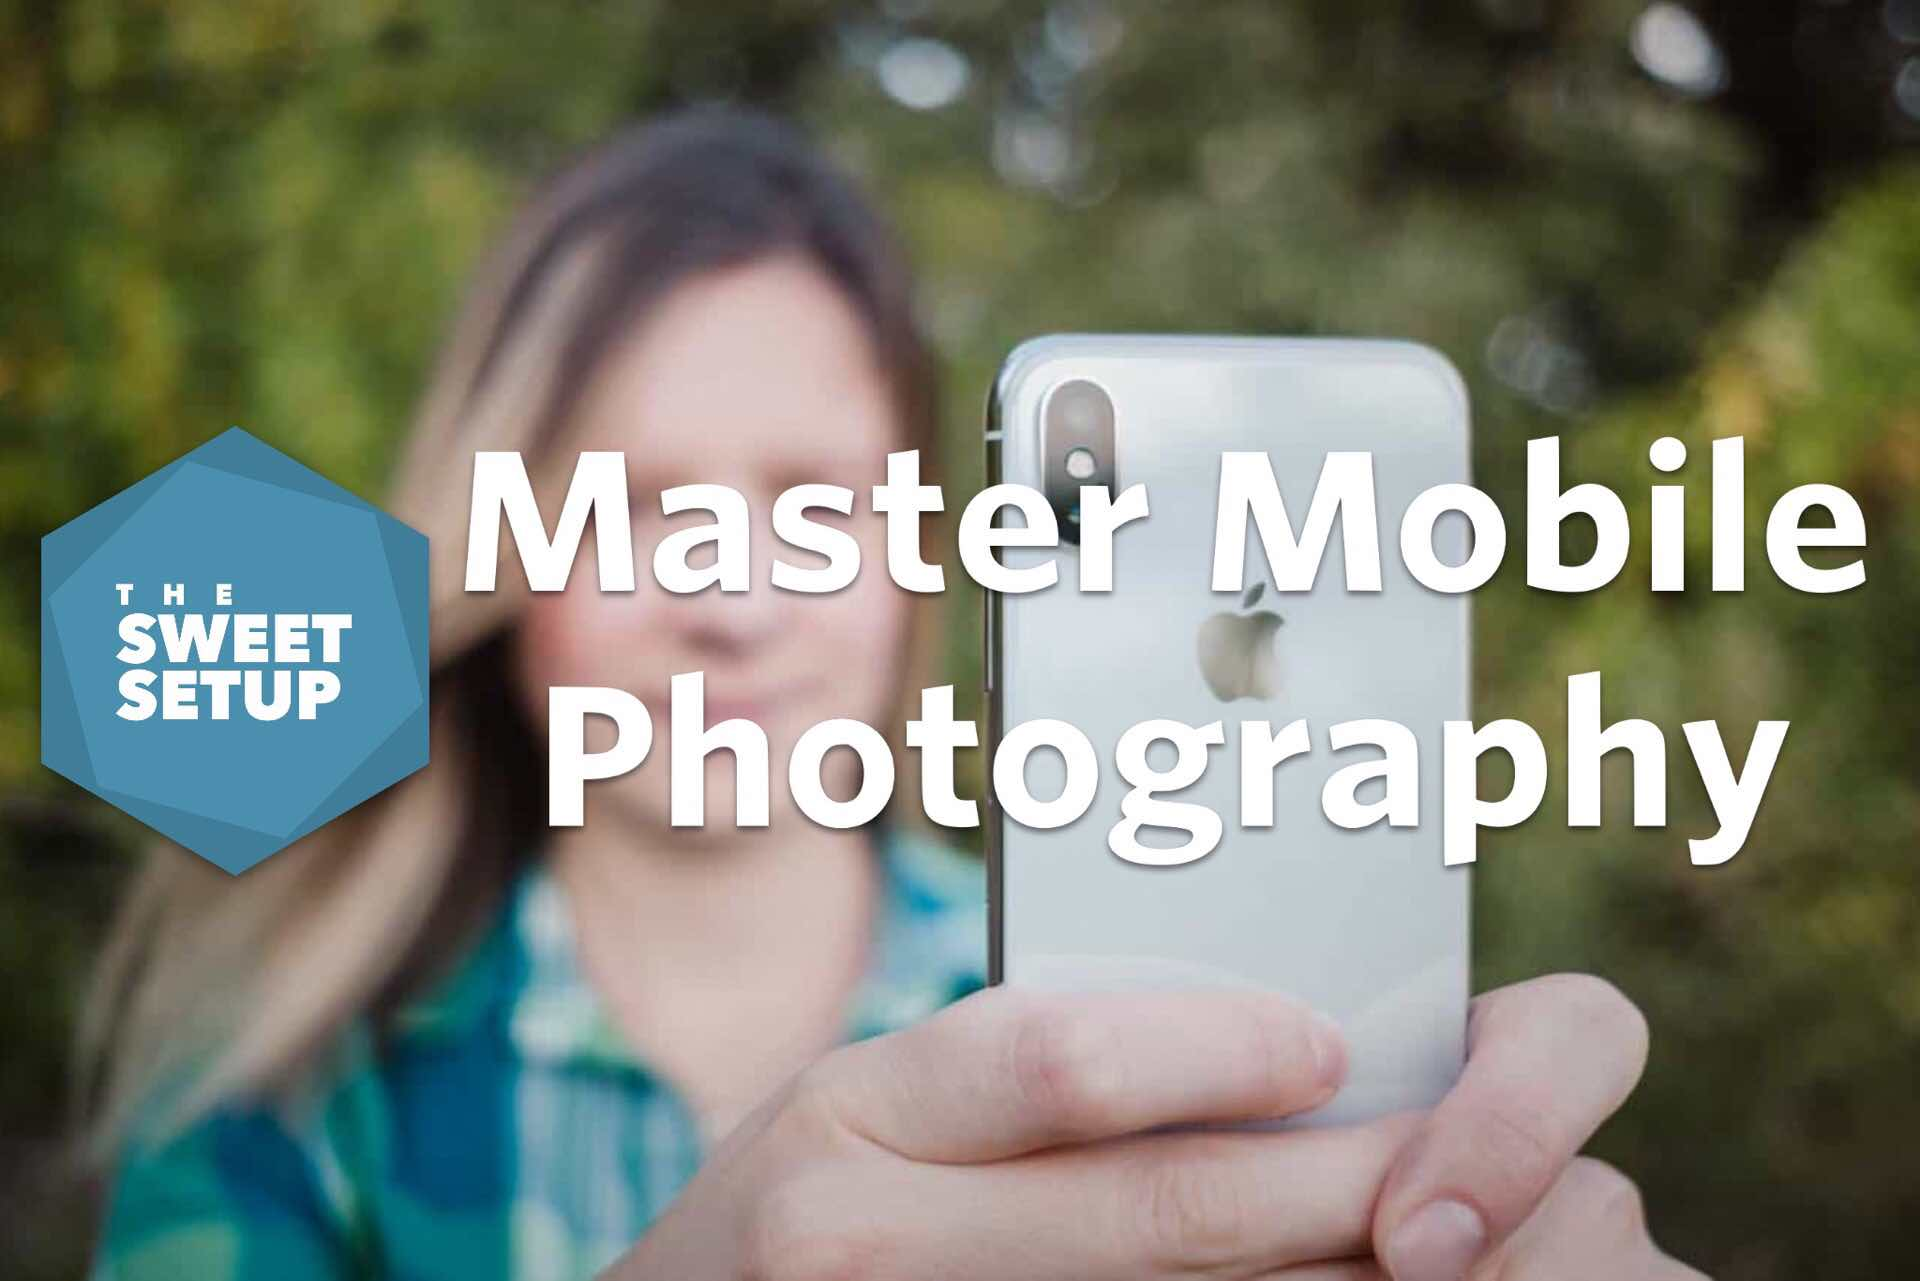 master-mobile-photography-course-by-the-sweet-setup